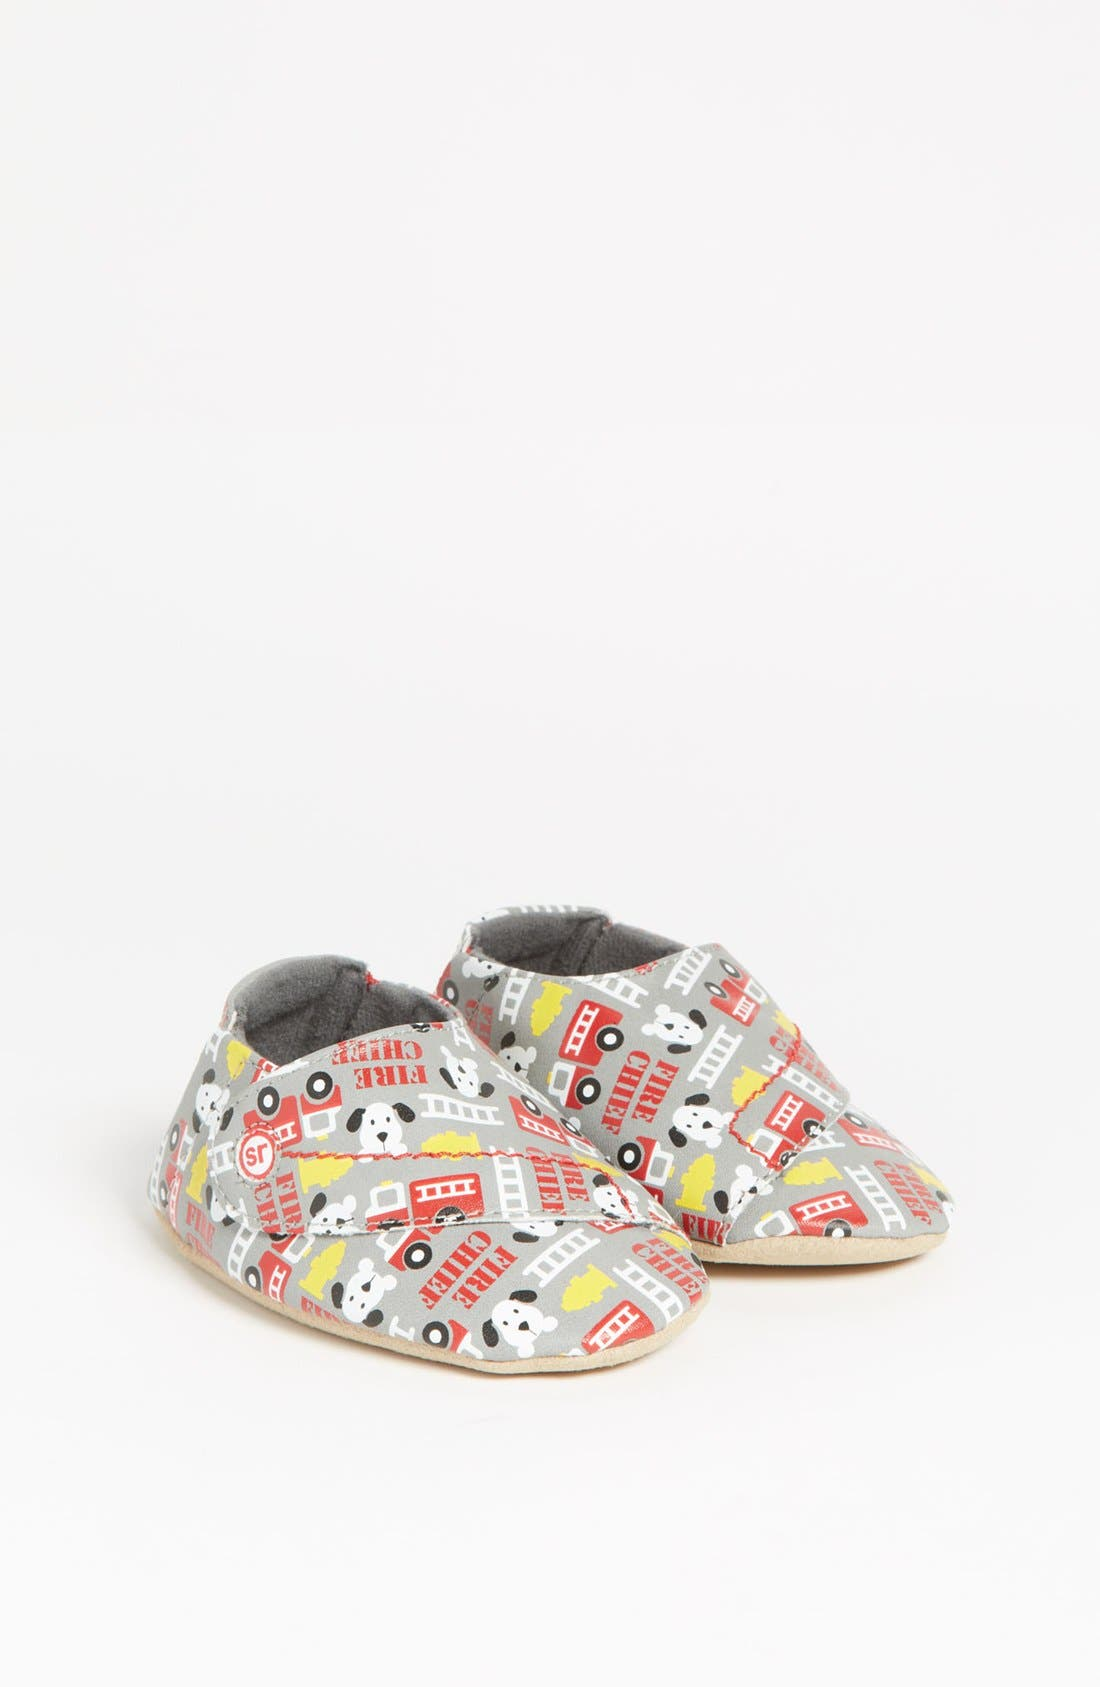 Alternate Image 1 Selected - Stride Rite 'Flashing Fire Truck' Crib Shoe (Baby) (Online Only)